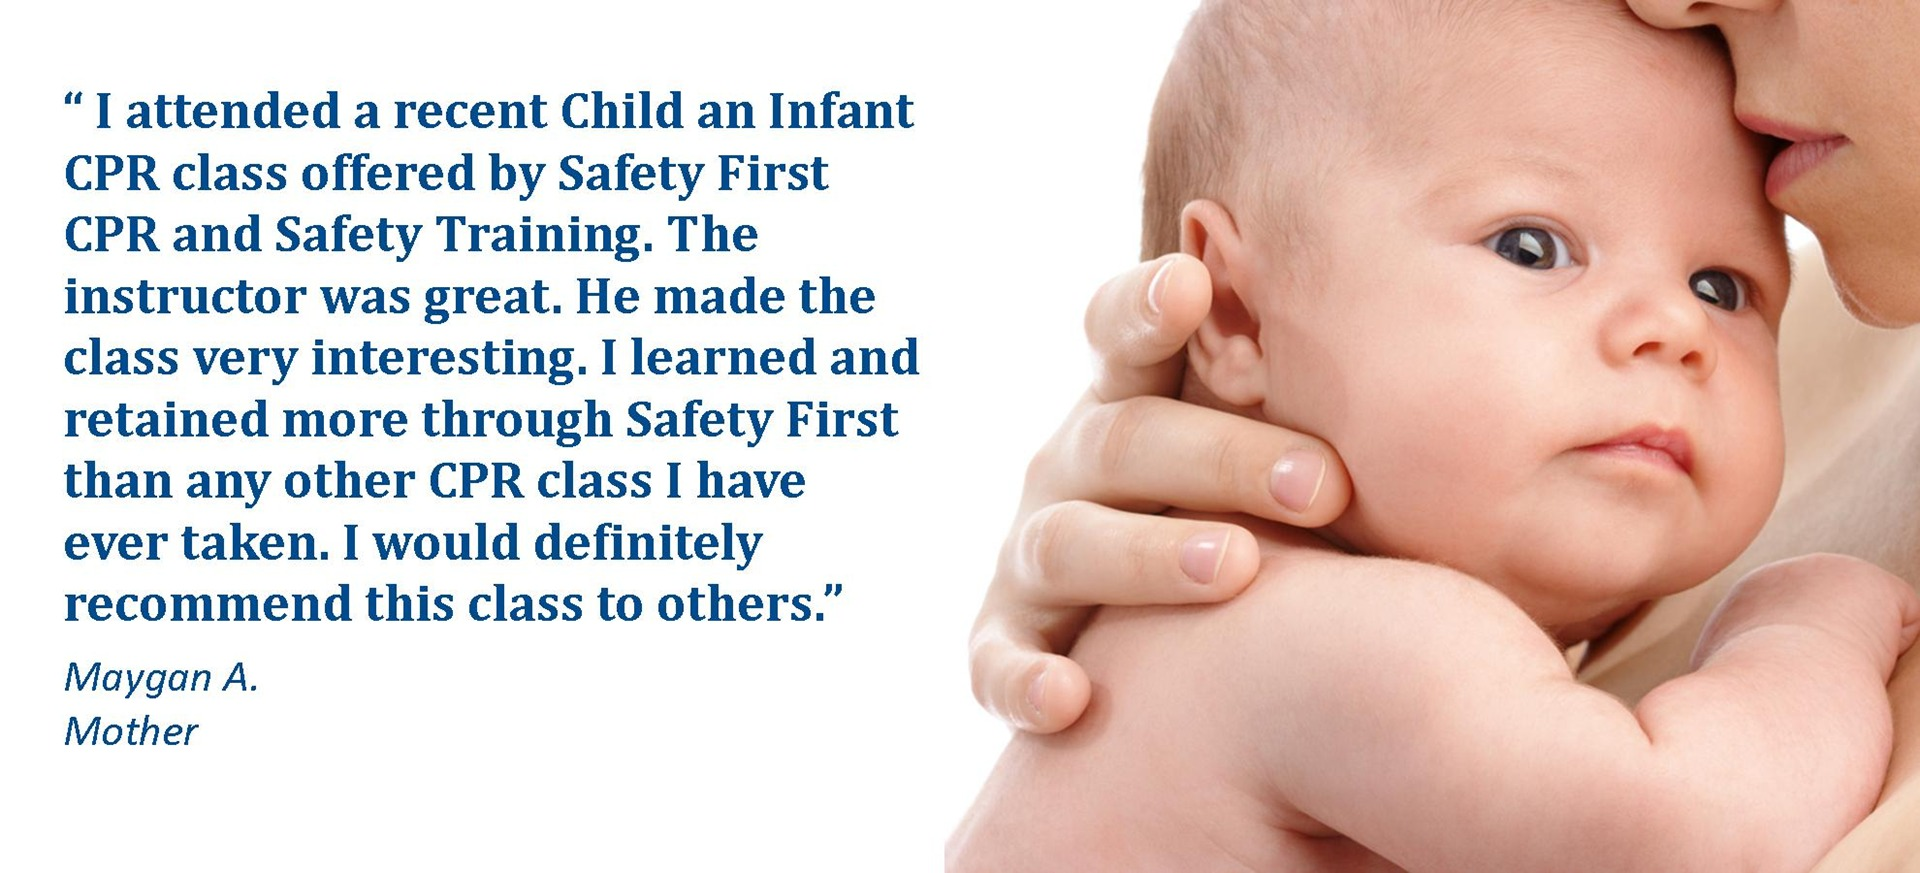 Safety first cpr safety training in jacksonville fl 1betcityfo Choice Image